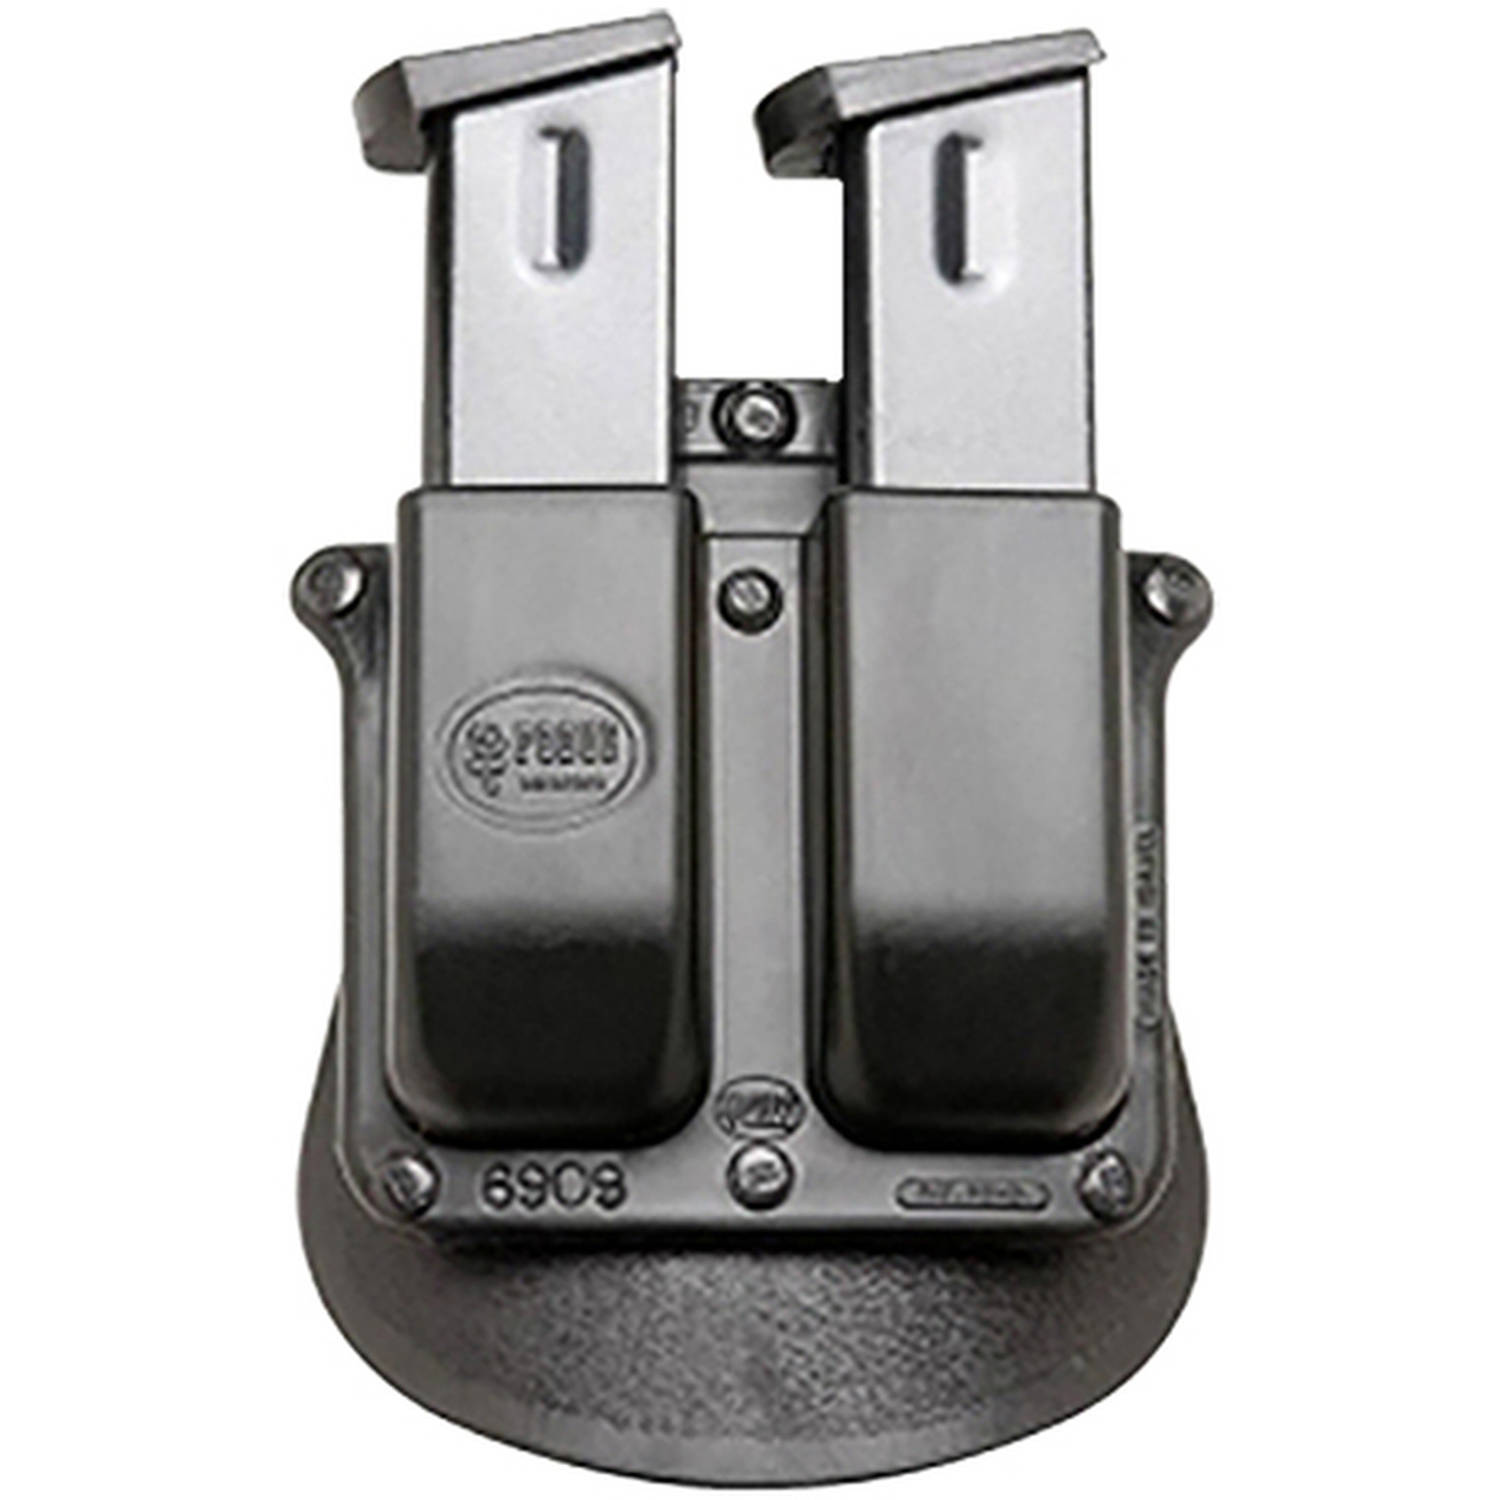 Fobus 6909NDBH Double Magazine Holders by FOBUS USA